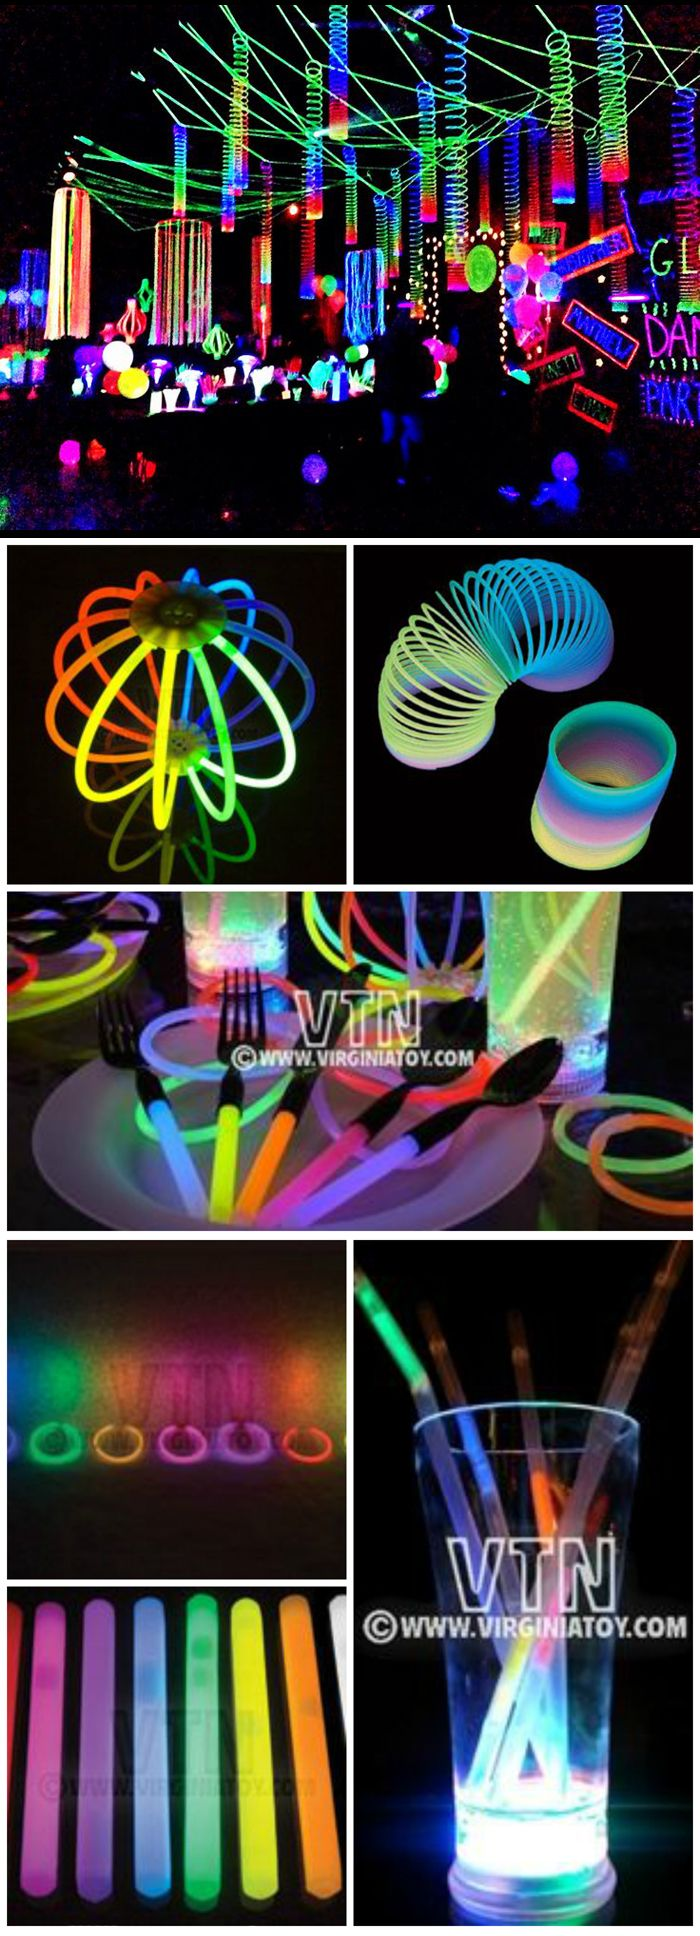 Glorious Glow Party Glow In The Dark Spooktacular Halloween Party Decorations Ideas Glow Party Decorations Glow Birthday Party Glow In Dark Party